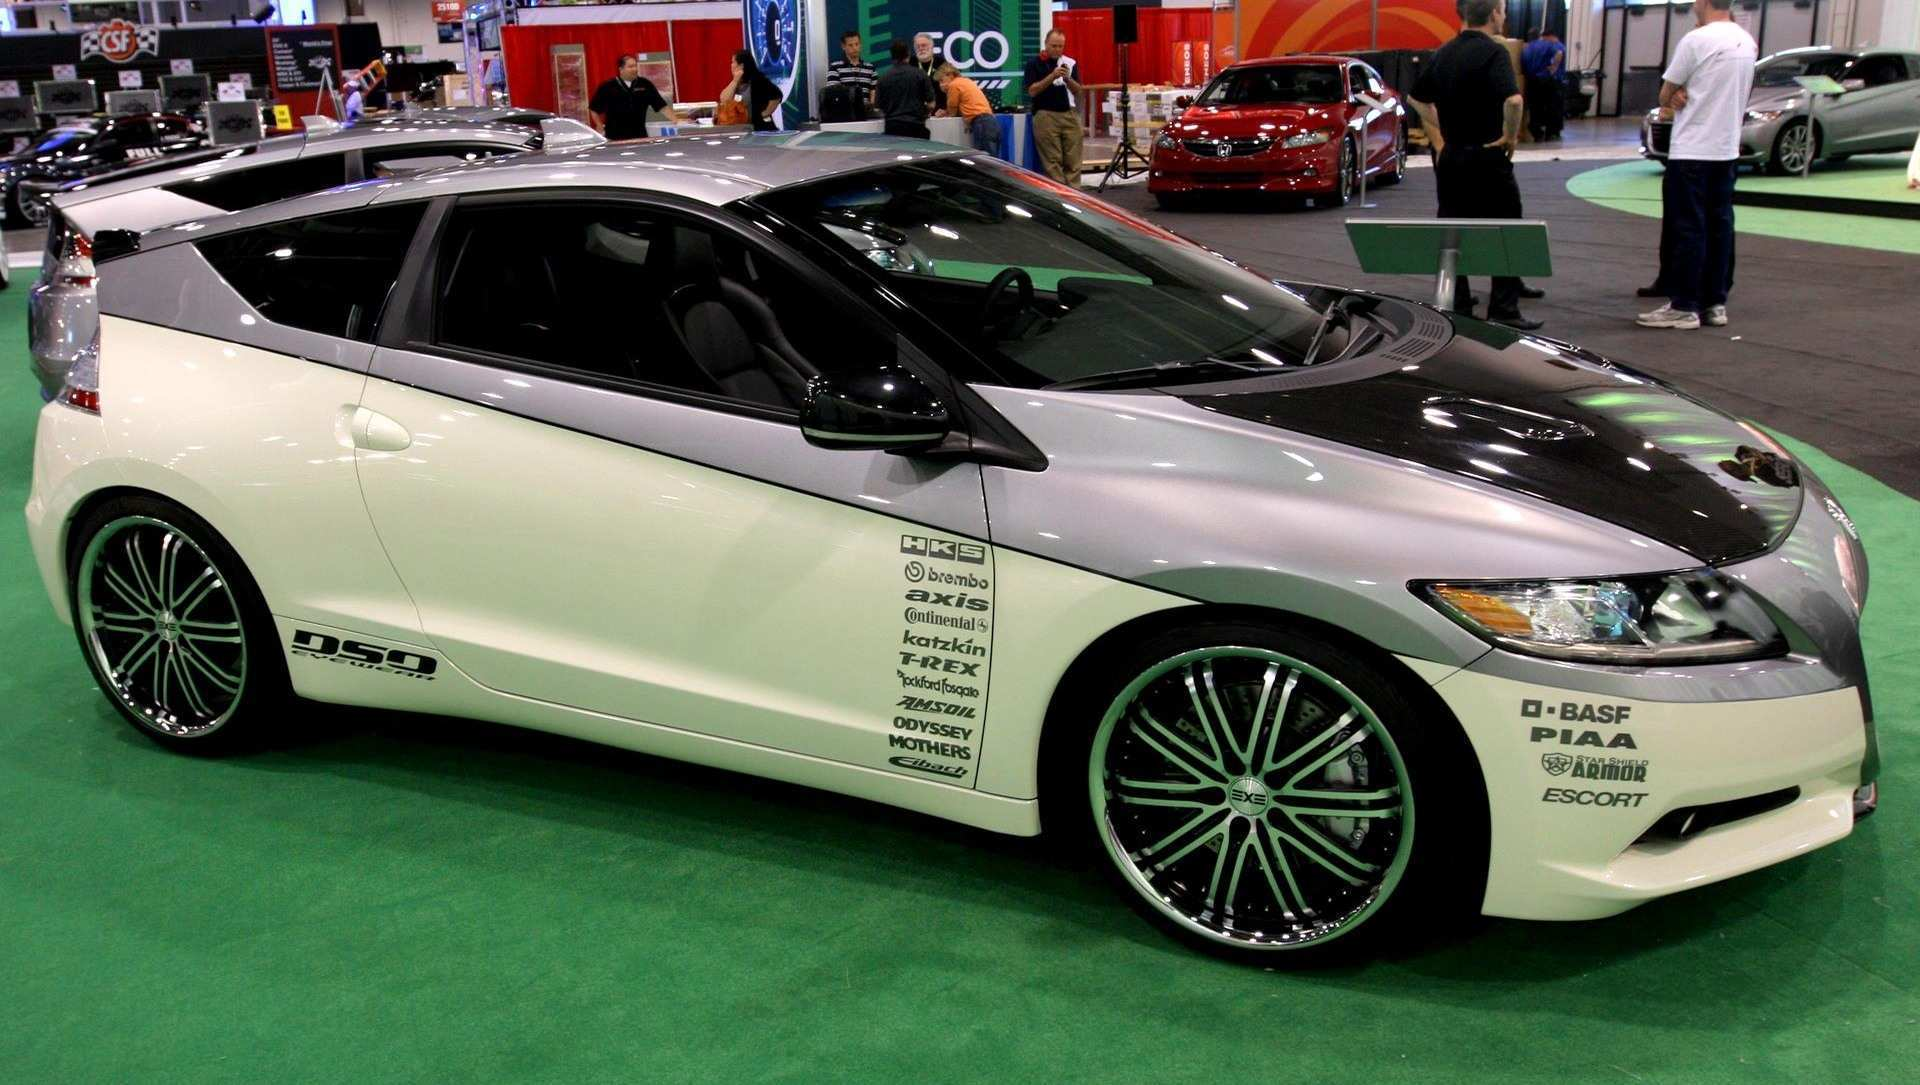 95 All New 2020 Honda Cr Z Price And Review